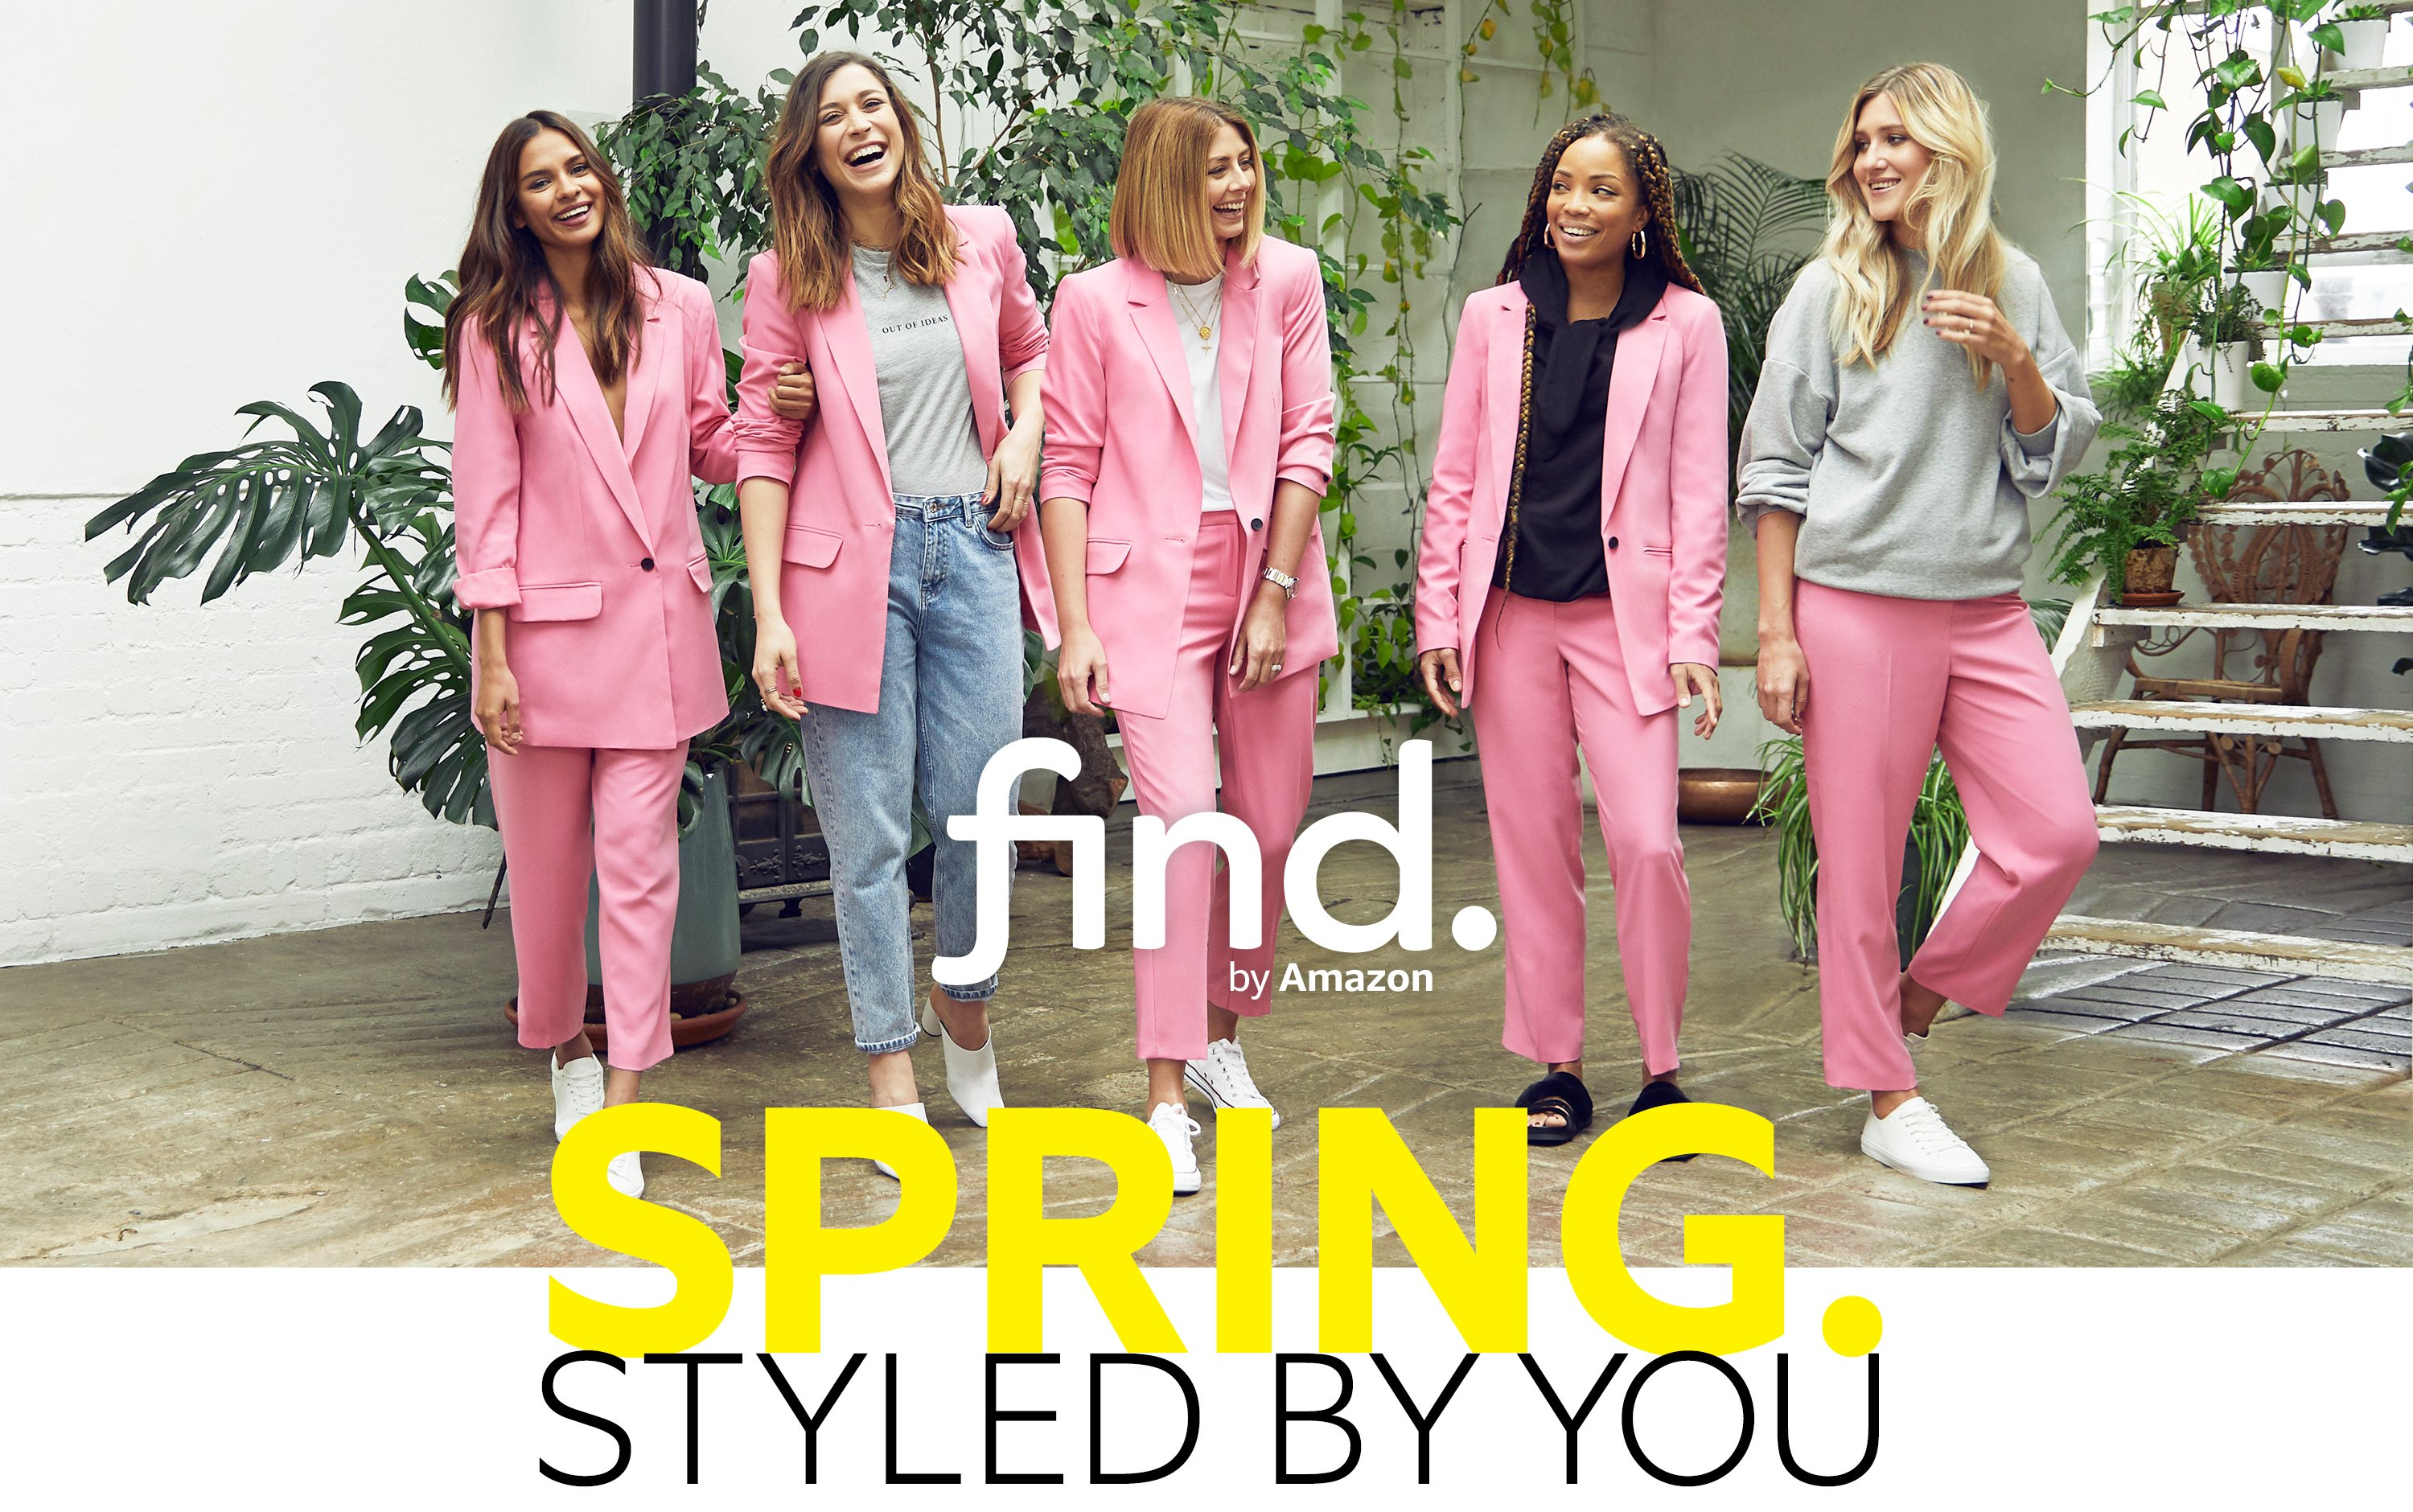 find. Spring Styled by You